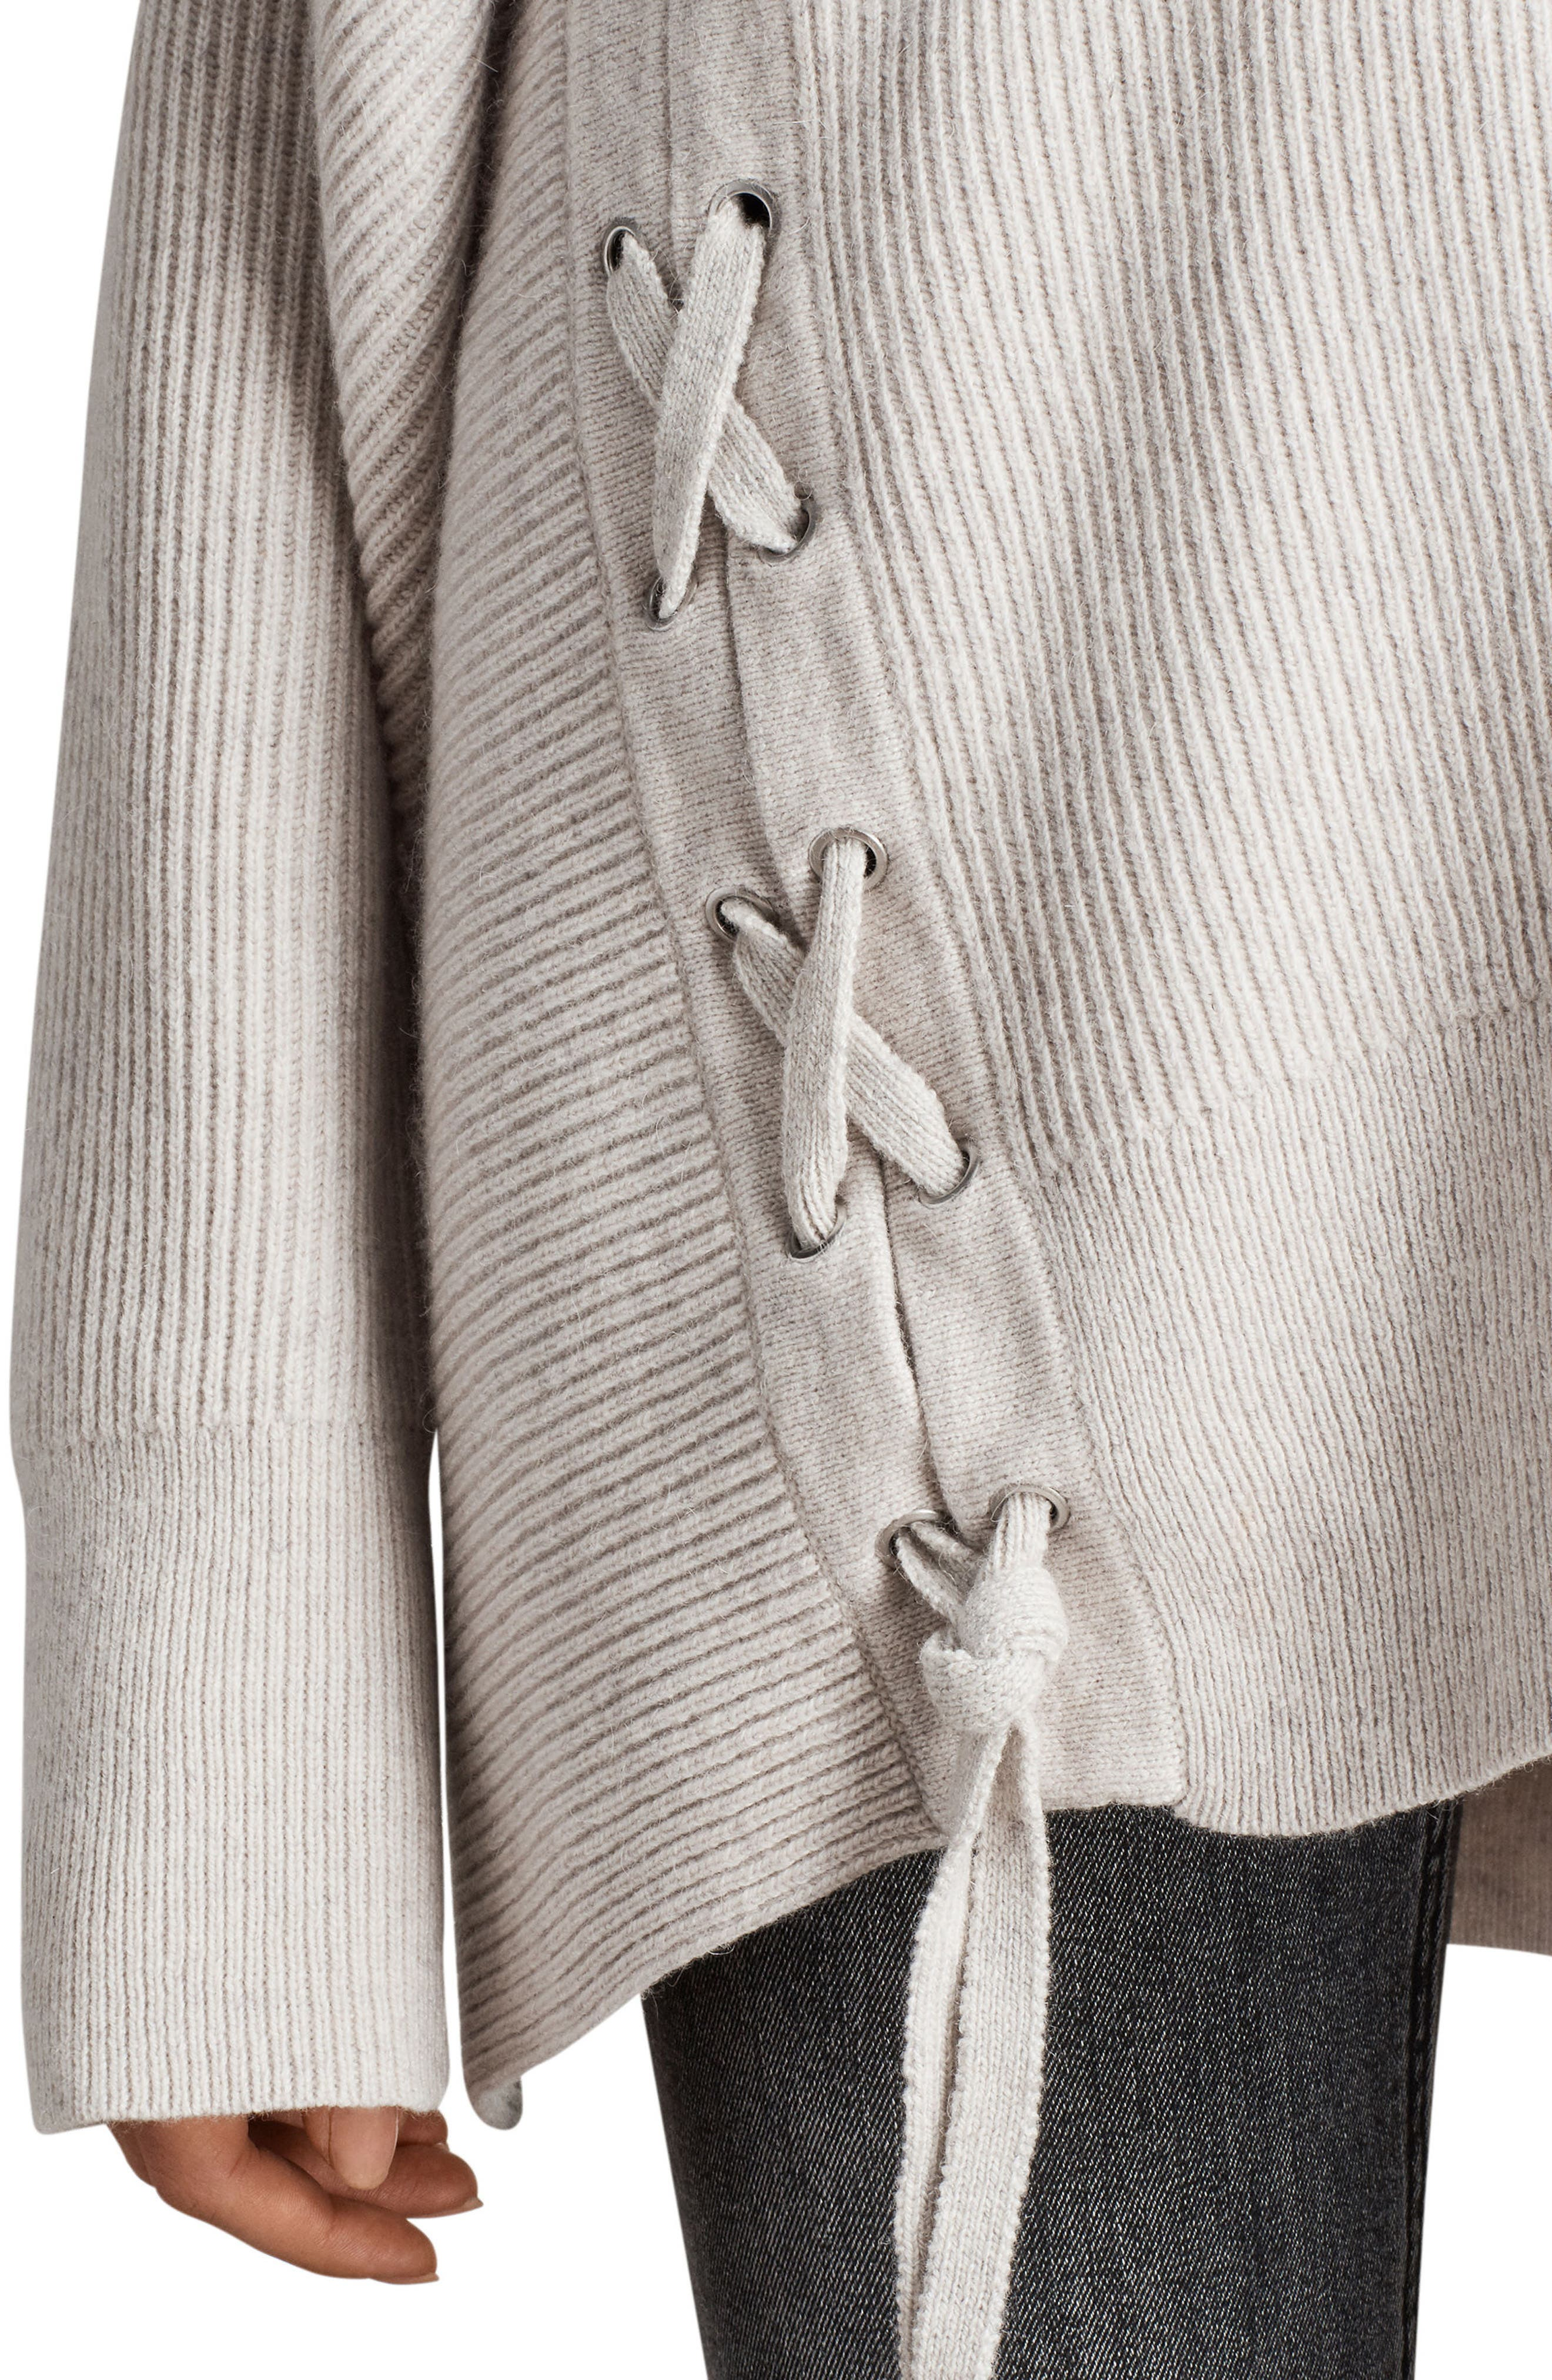 Able Laced Sweater,                             Alternate thumbnail 5, color,                             Porcelain White